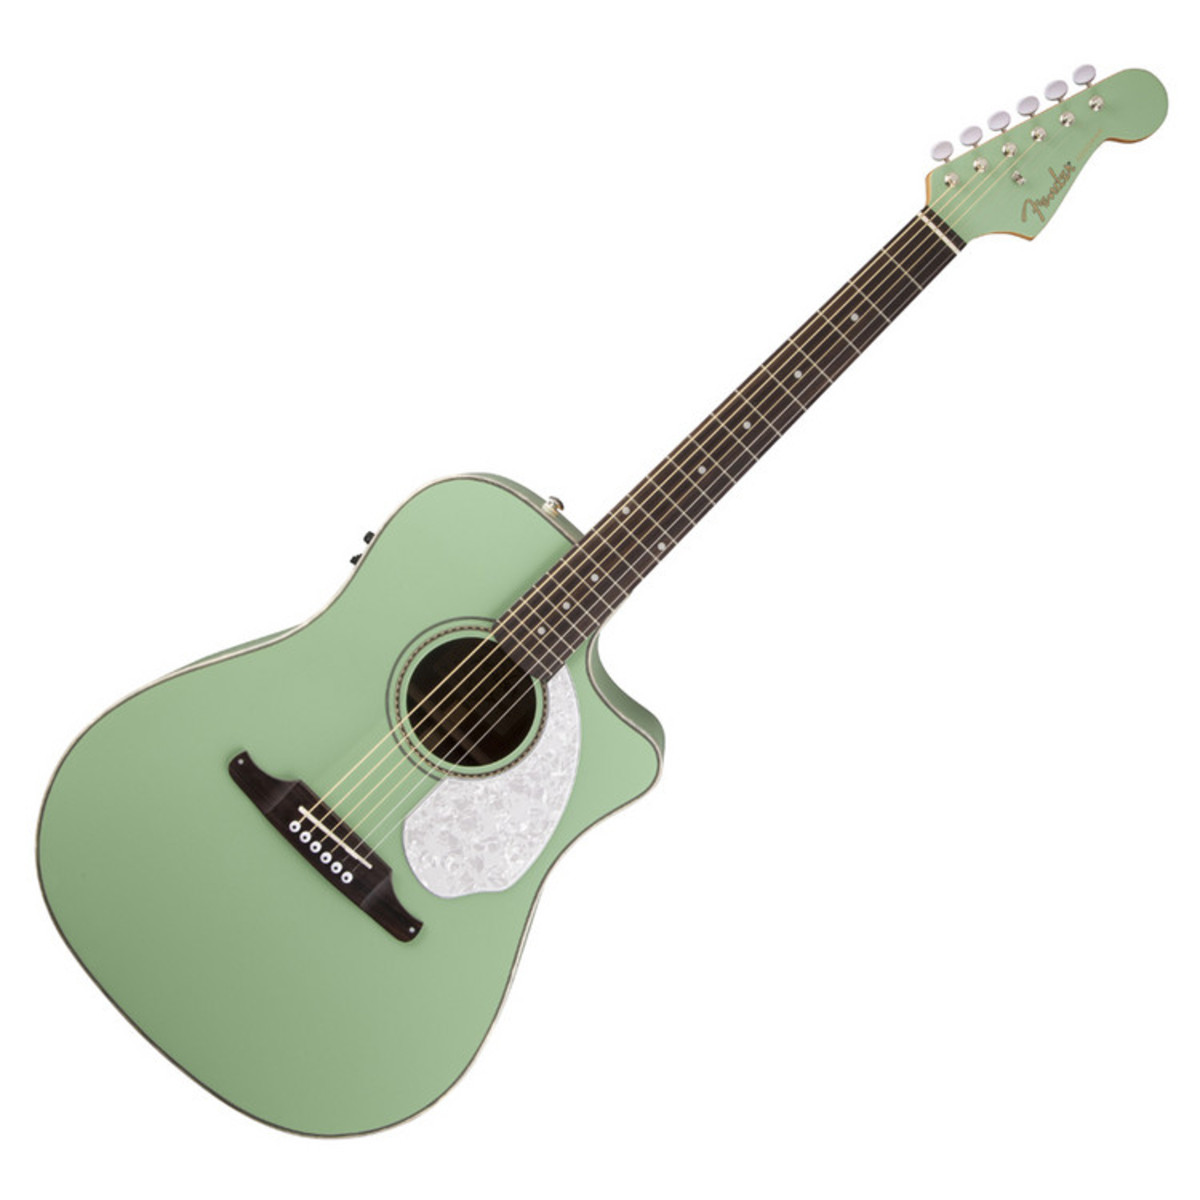 Fender Sonoran Sce Electro Acoustic Rw Surf Green Nearly New At Gear4music